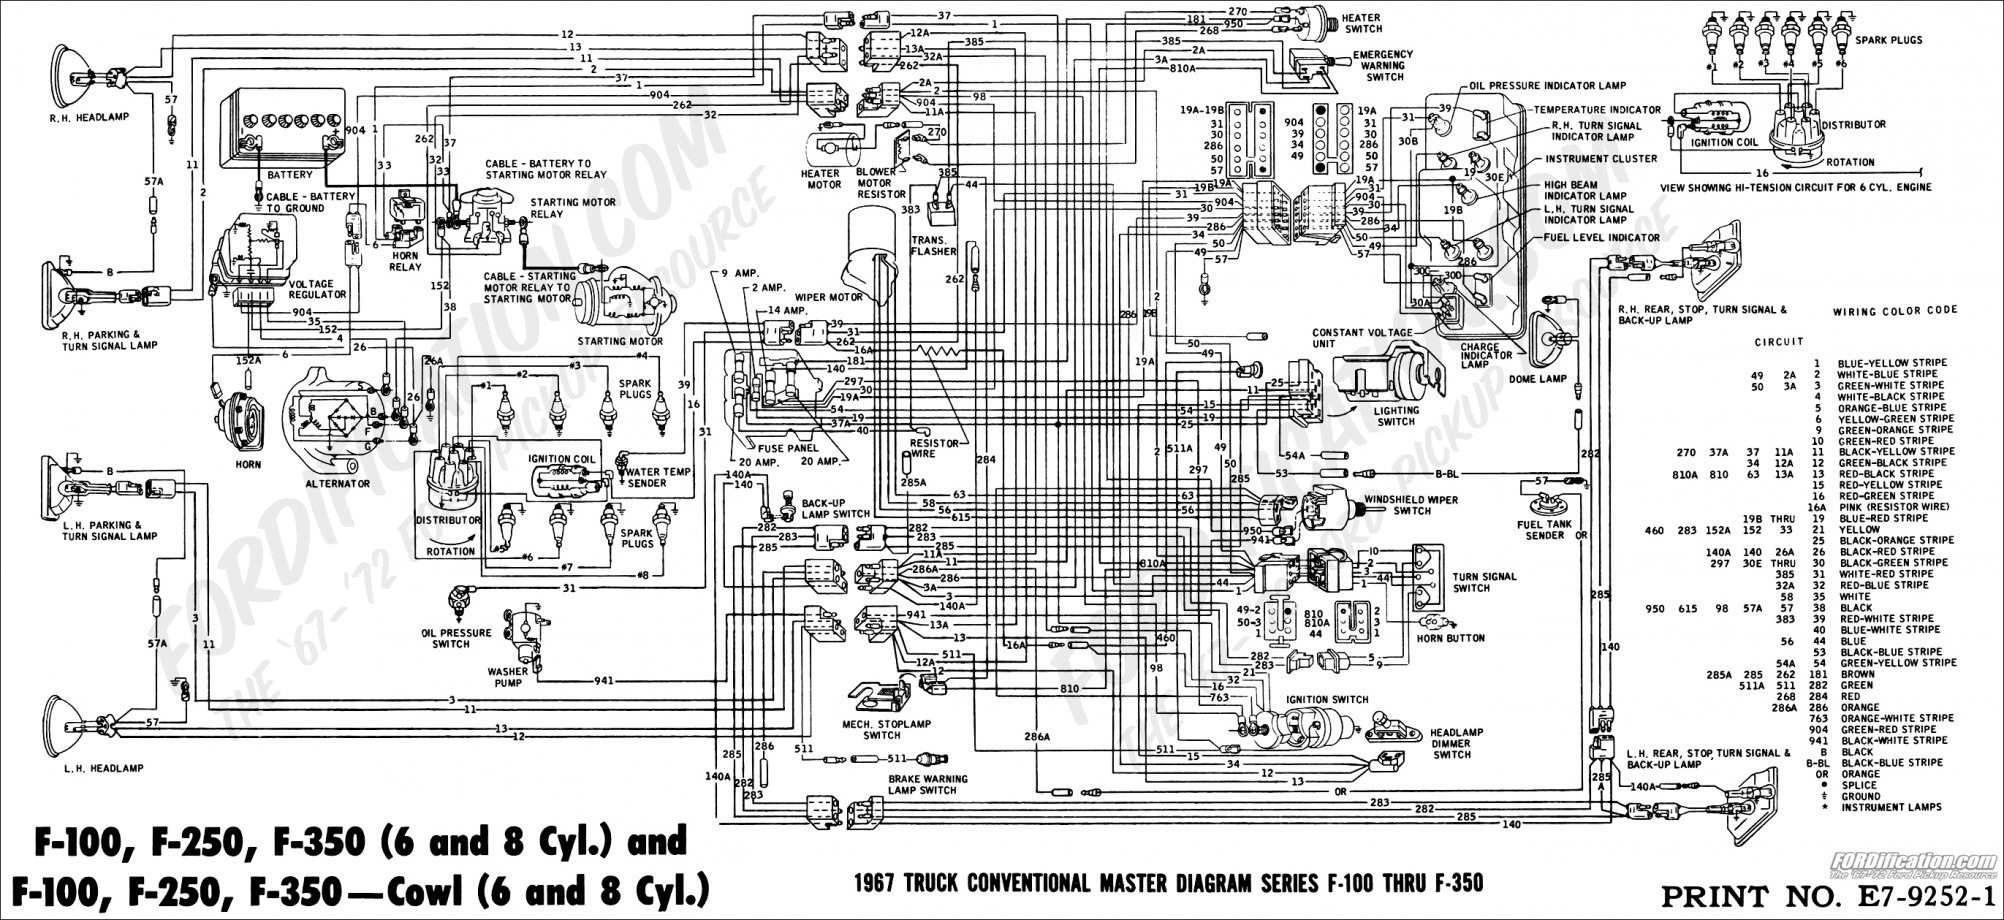 99 Ford F150 Wiring Diagram - Wiring Diagram Explained - 99 F150 Trailer Wiring Diagram